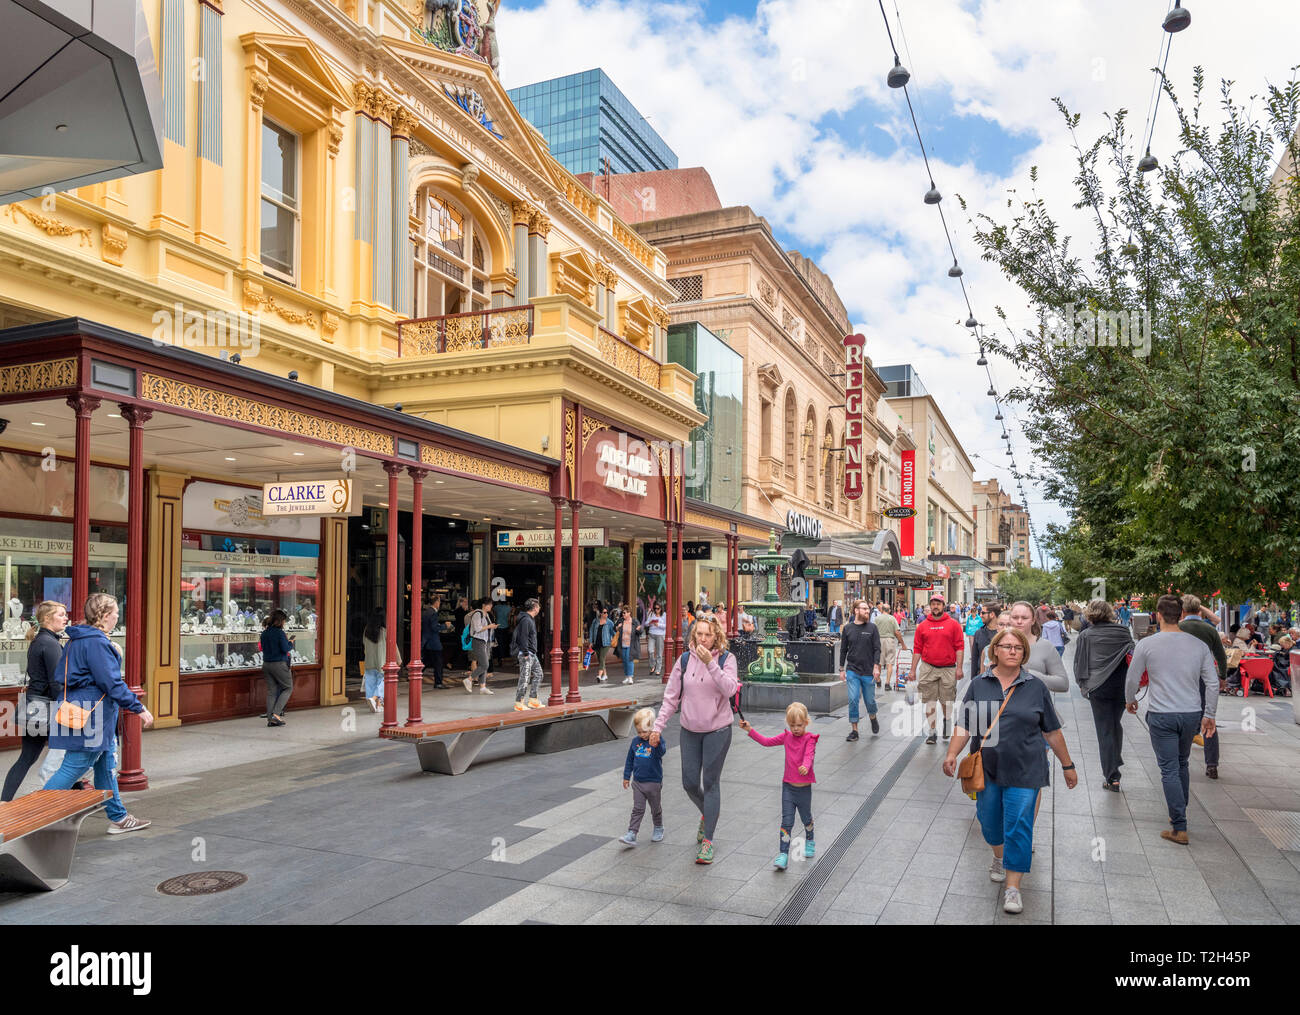 Adelaide, Australia. The Adelaide Arcade on Rundle Mall, Central Business District (CBD), Adelaide, South Australia, Australia - Stock Image